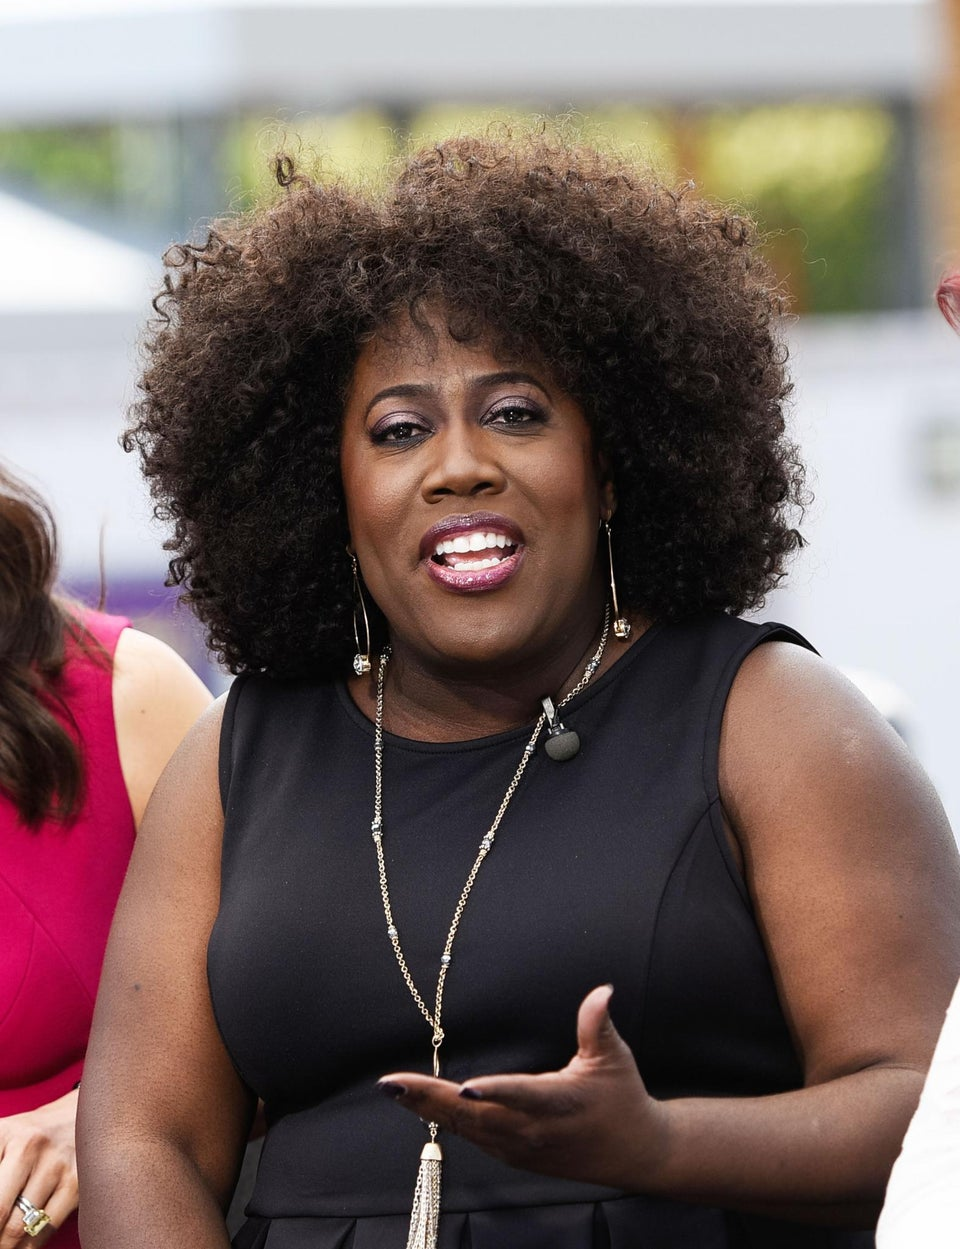 Sheryl Underwood Breaks Down While Discussing Police Brutality On 'The Talk'